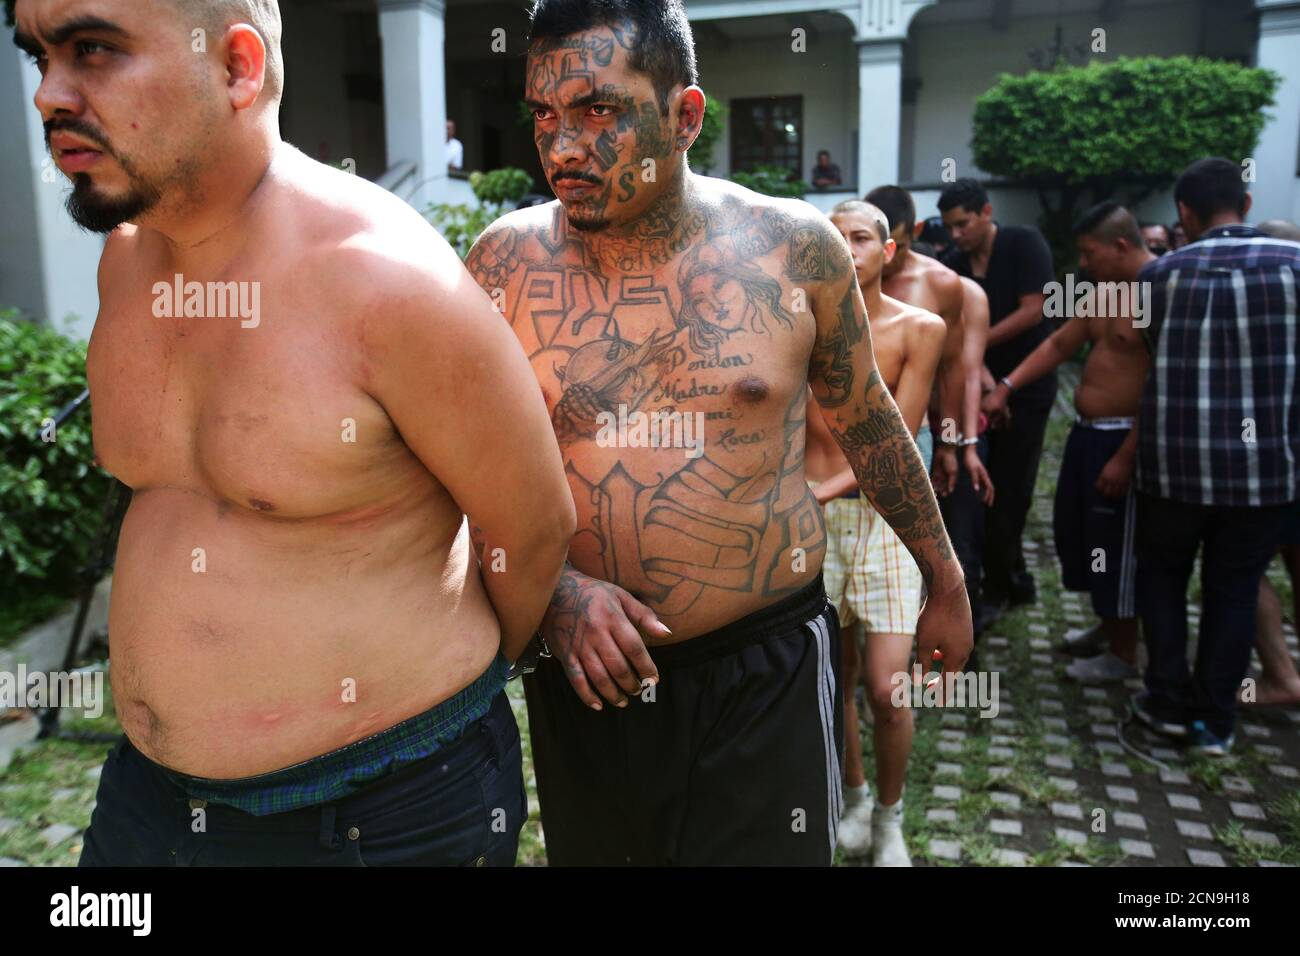 Members of the Mara Salvatrucha gang (MS-13) are escorted after being presented to the media after being detained by the police during a private party in San Salvador, El Salvador, August 10, 2017. REUTERS/Jose Cabezas Stock Photo